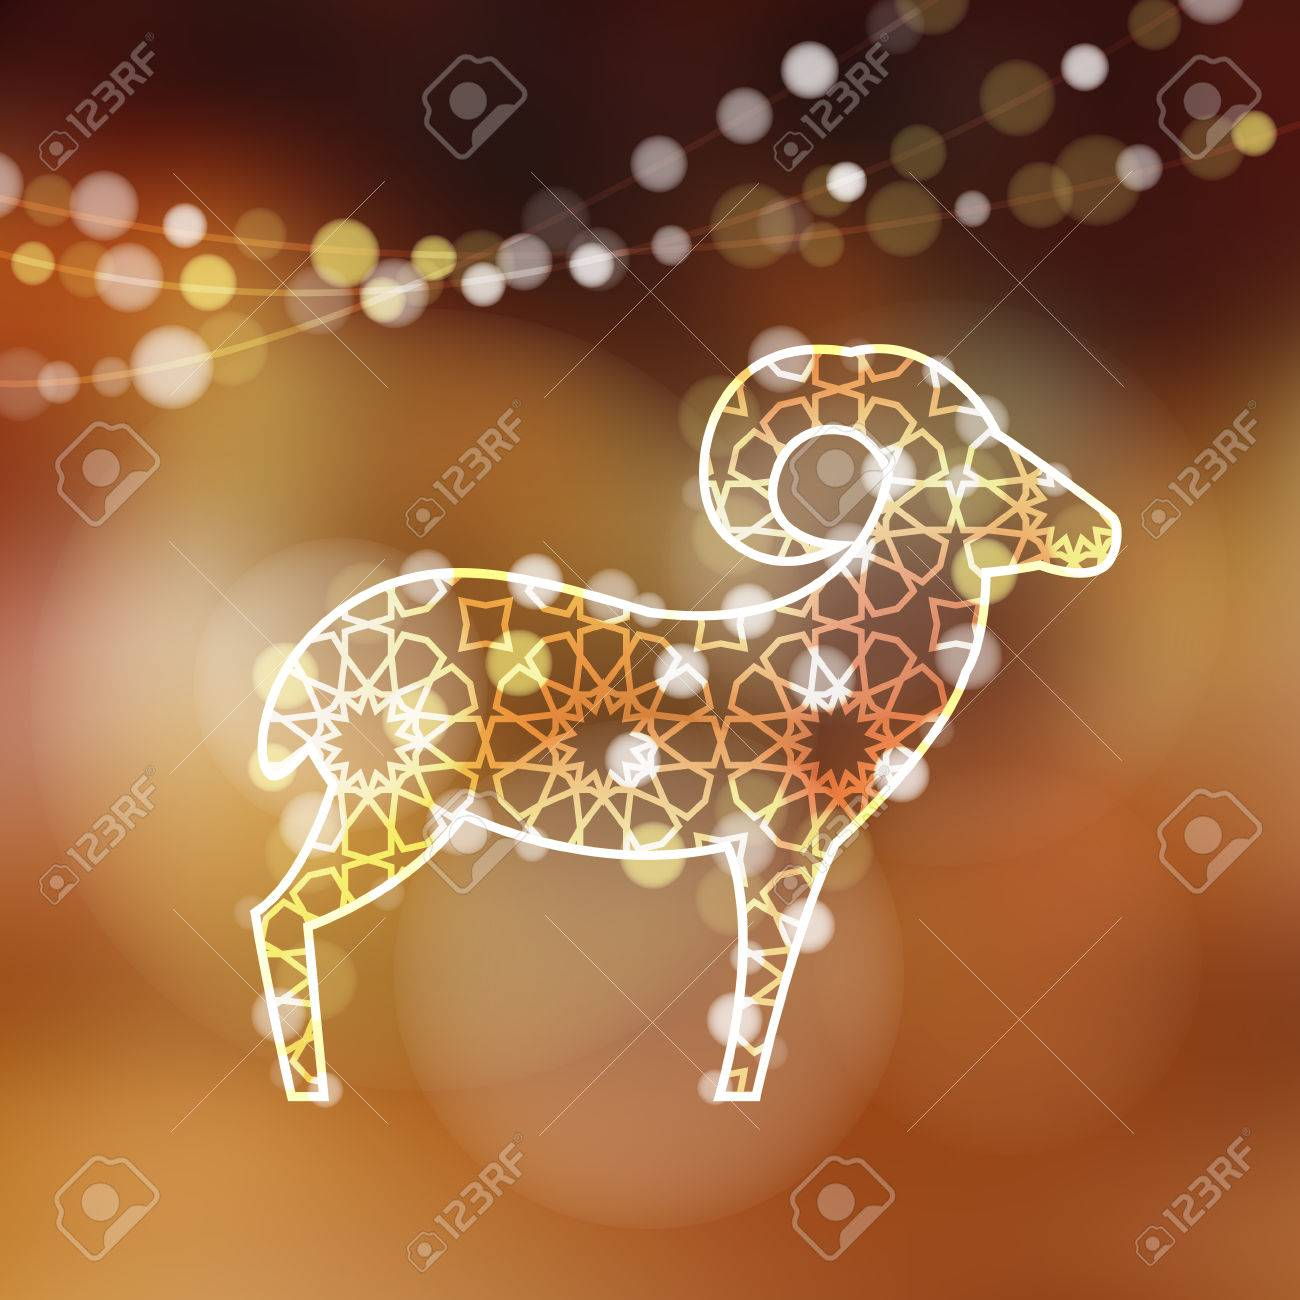 Greeting card with silhouette of ornamental sheep illuminated by lights, vector illustration background for Eid Ul Adha holiday - 44255559